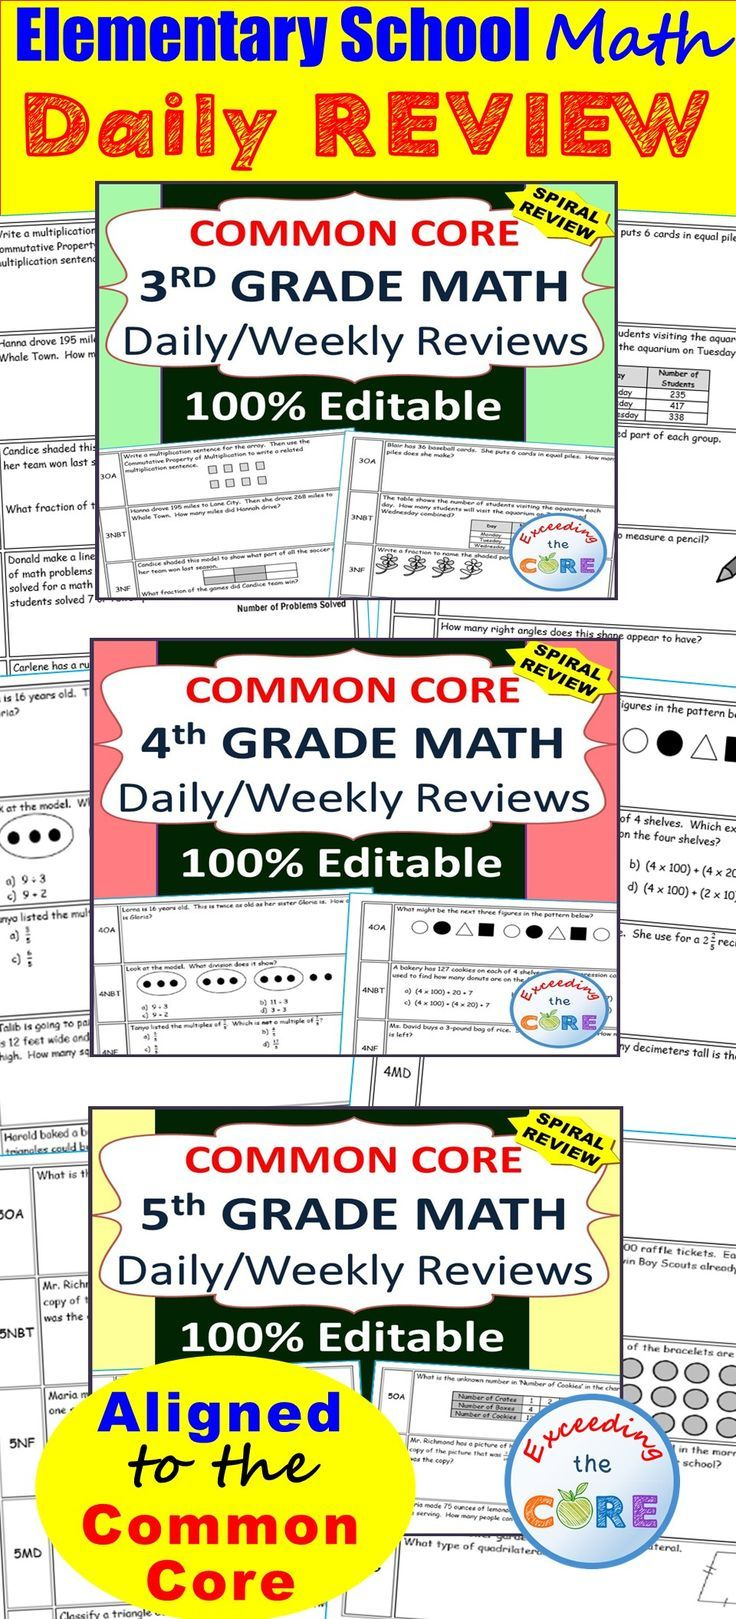 Need a Spiral Review of the 3rd, 4th and 5th Grade Common Core standards? This Bundle contains 300 questions aligned to the common core math standards for 3rd, 4th and 5th grade. Perfect for warm-ups, homework, math centers & test prep. The resource is 100% editable!  Operations and Algebraic Thinking (3OA, 4OA, 5OA), Numbers and Operations in Base Ten (3NBT, 4NBT, 5NBT), Numbers and Fractions (3NF, 4NF, 5NF), Measurement & Data (3MD, 4MD, 5MD), Geometry (3G, 4G, 5G)